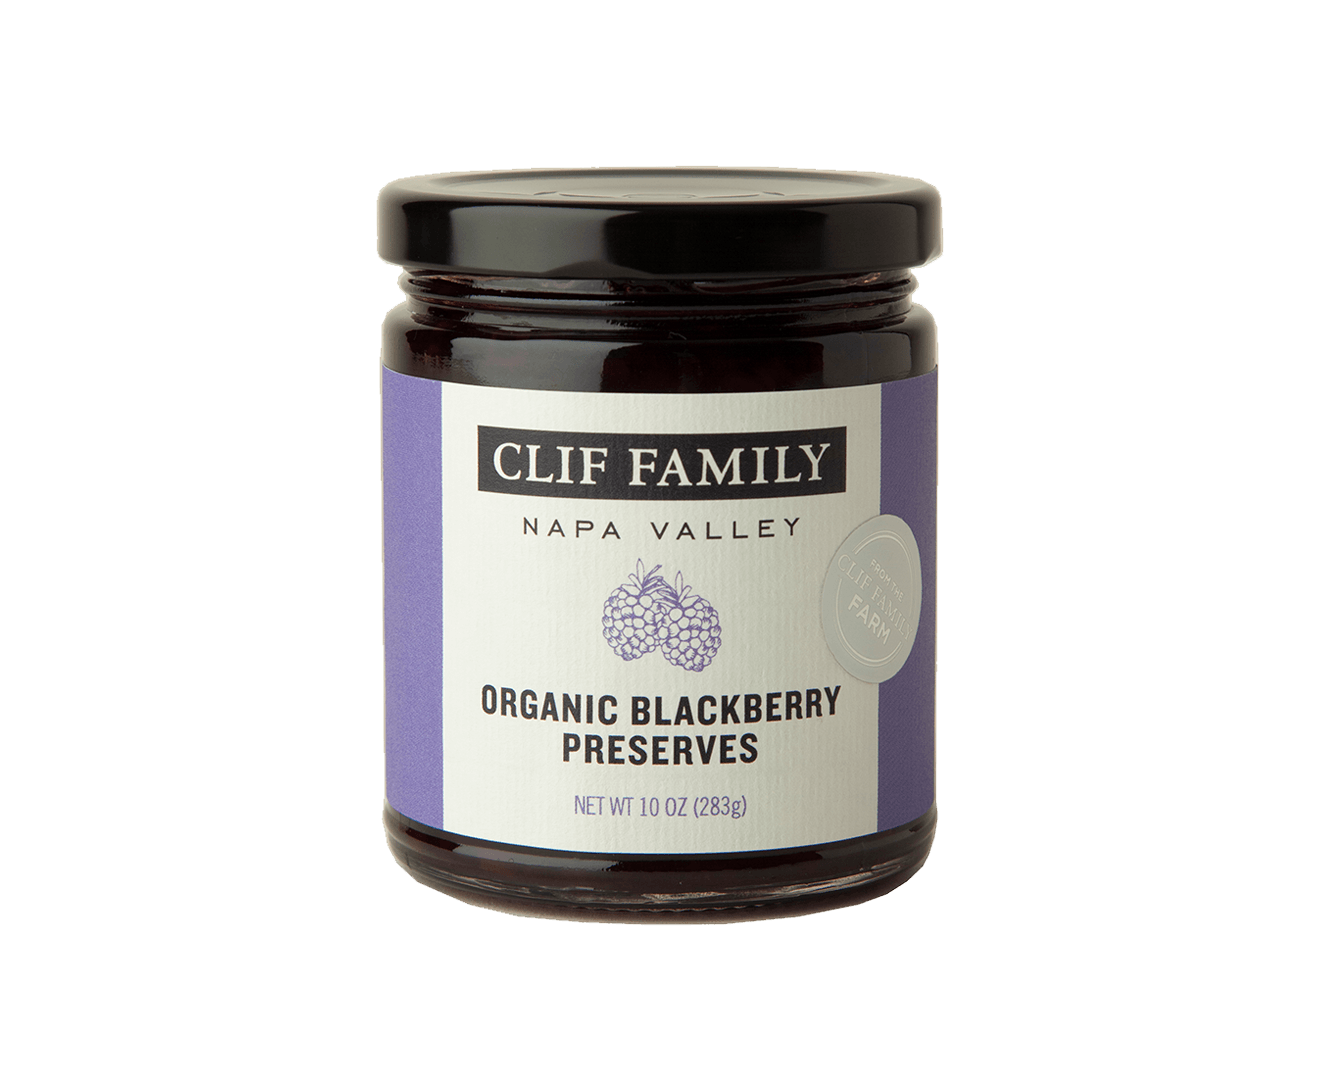 Organic Blackberry Preserves packaging